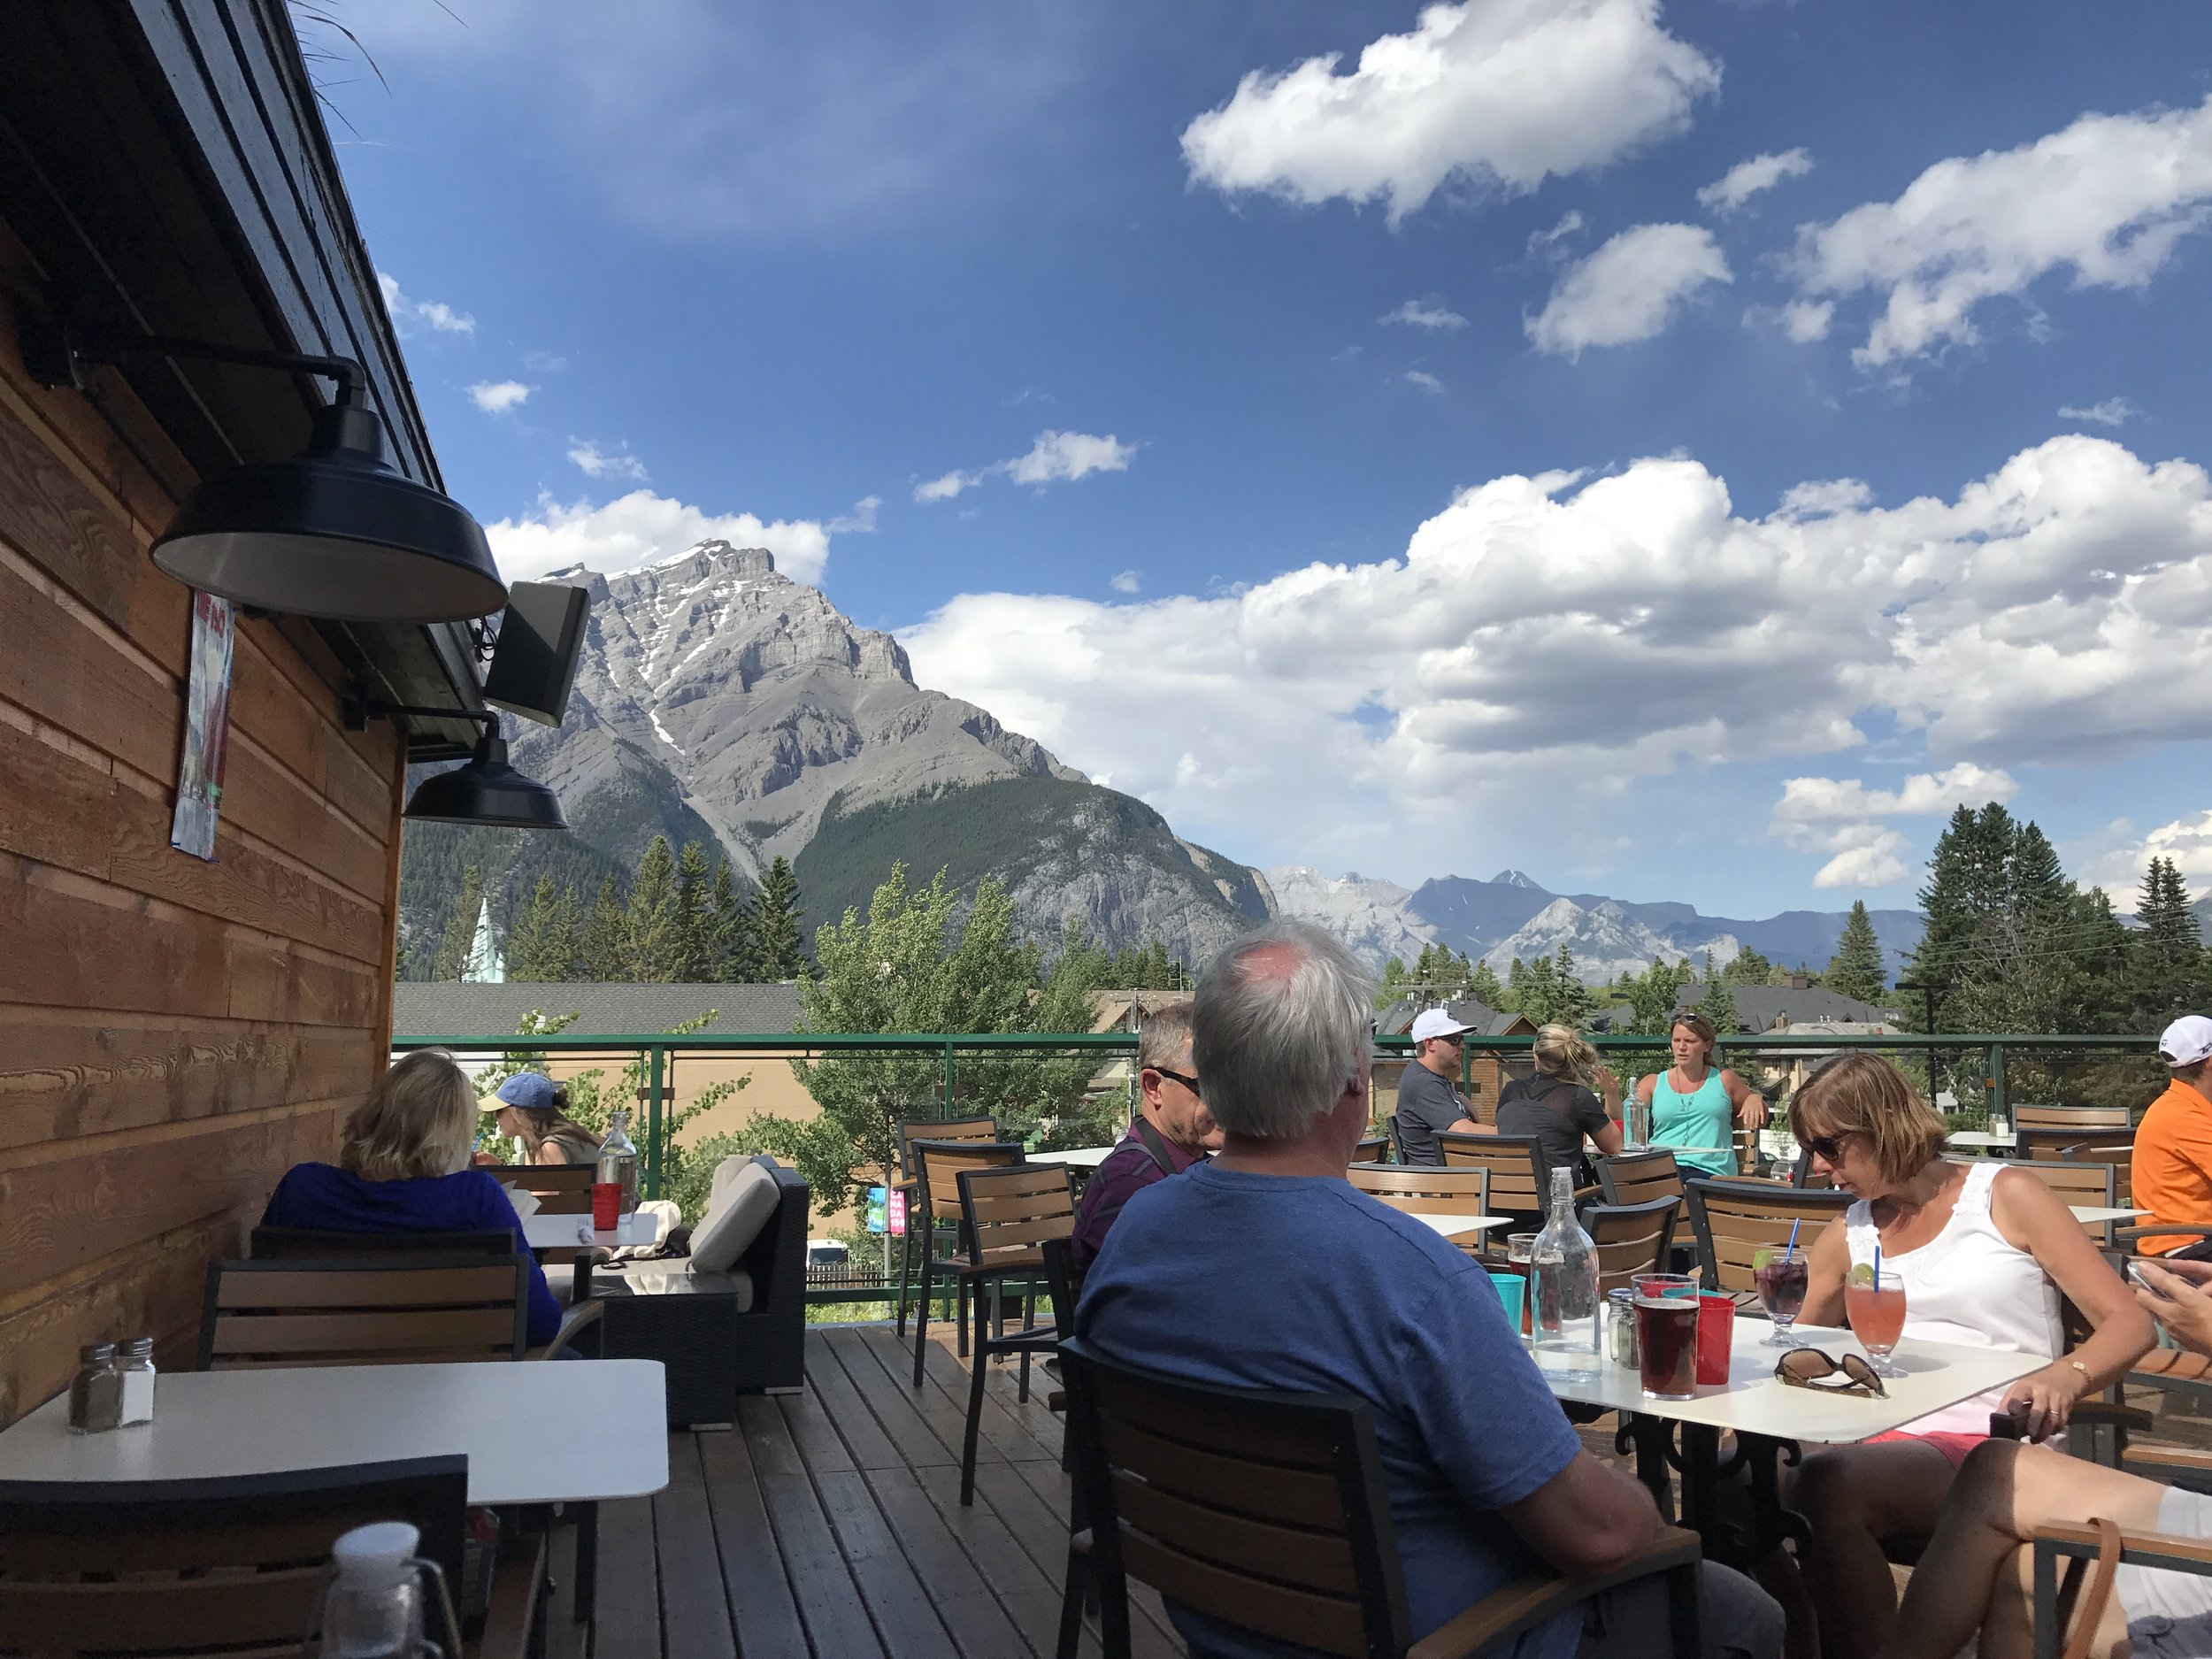 View from my table at the Crown and Rose Pub in the City of Banff.